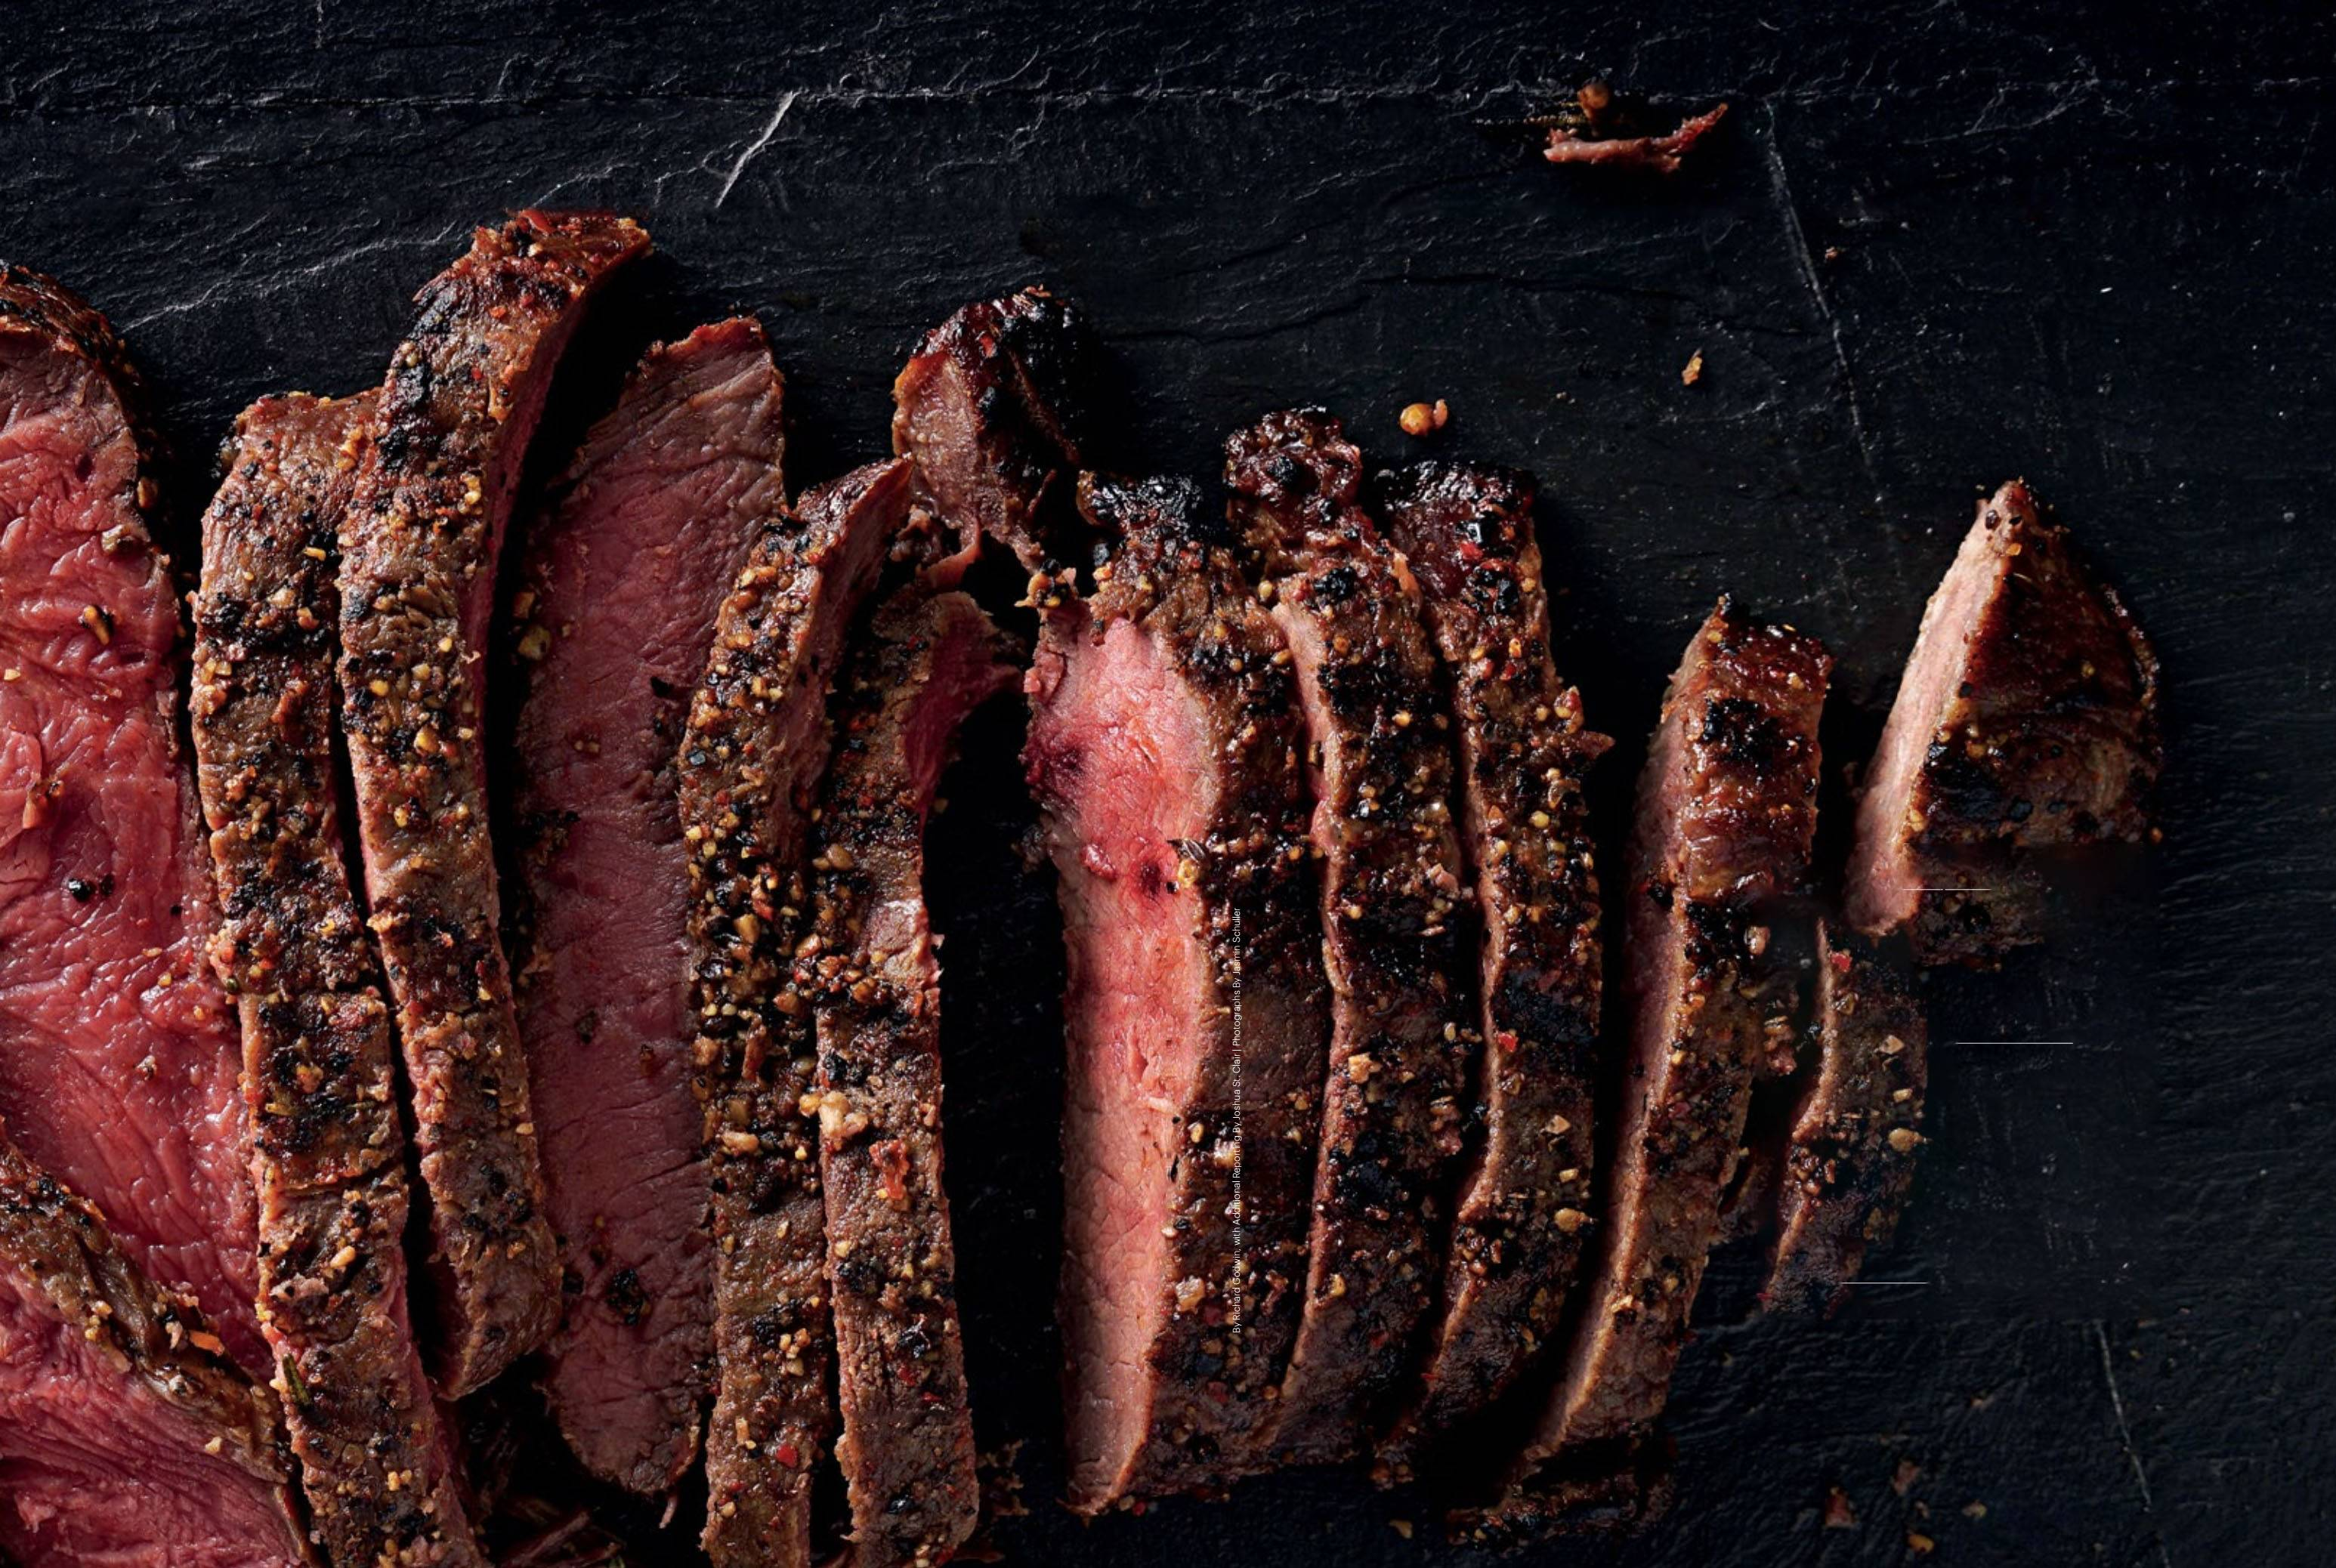 ALL MEAT. ALL THE TIME. ANY QUESTIONS?